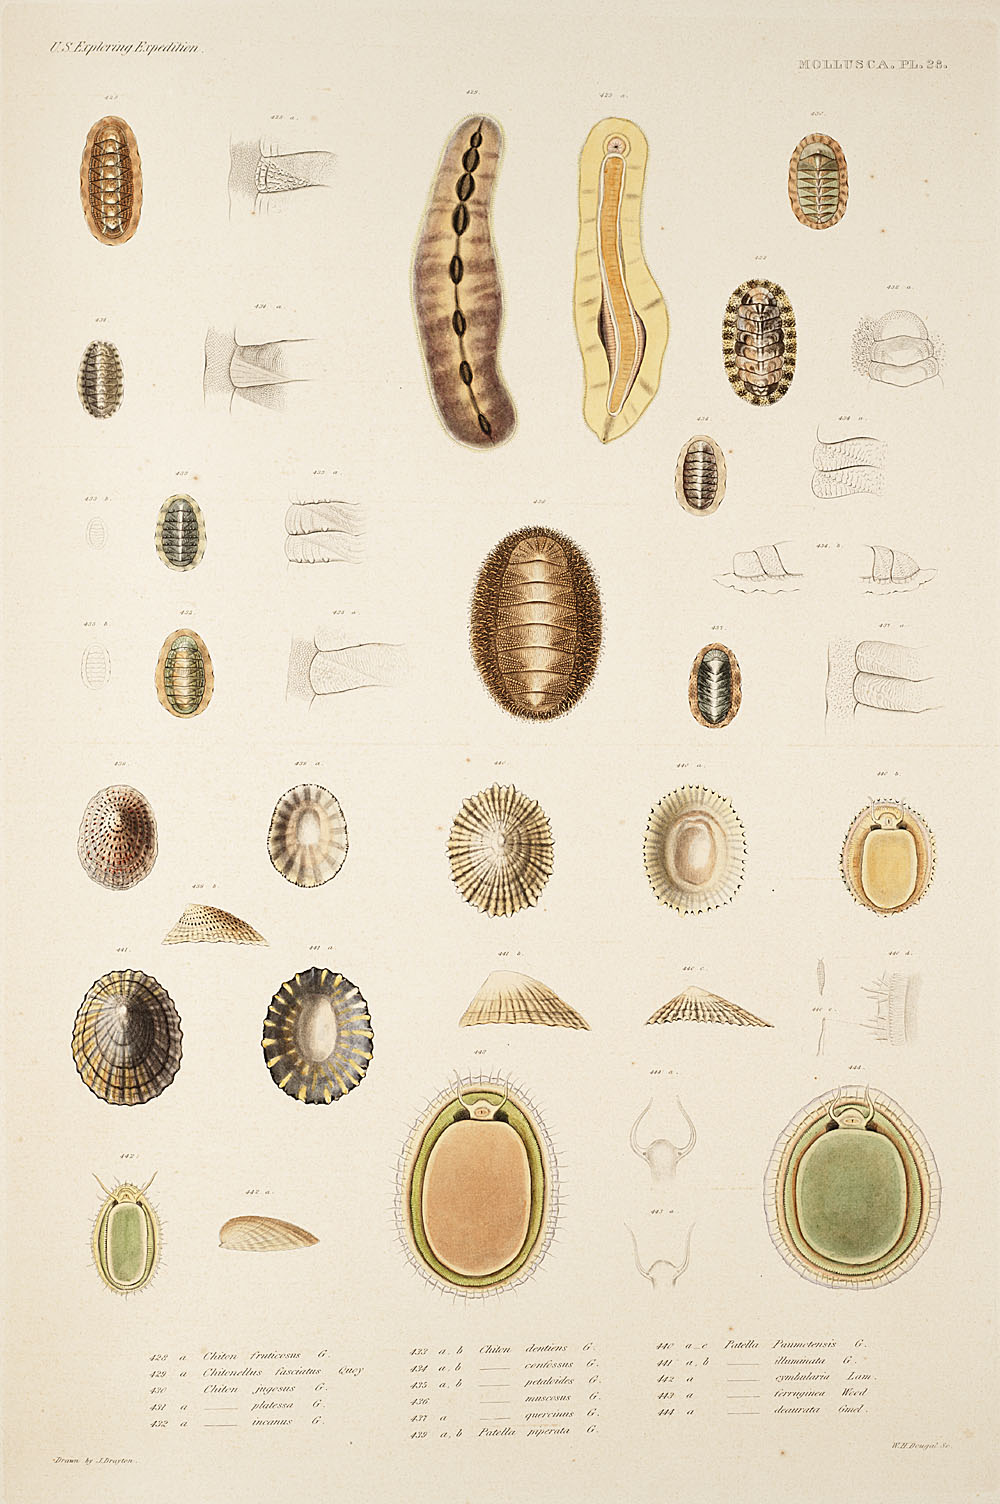 Mollusca, Pl. 28,  Image number:sil19-18-077b